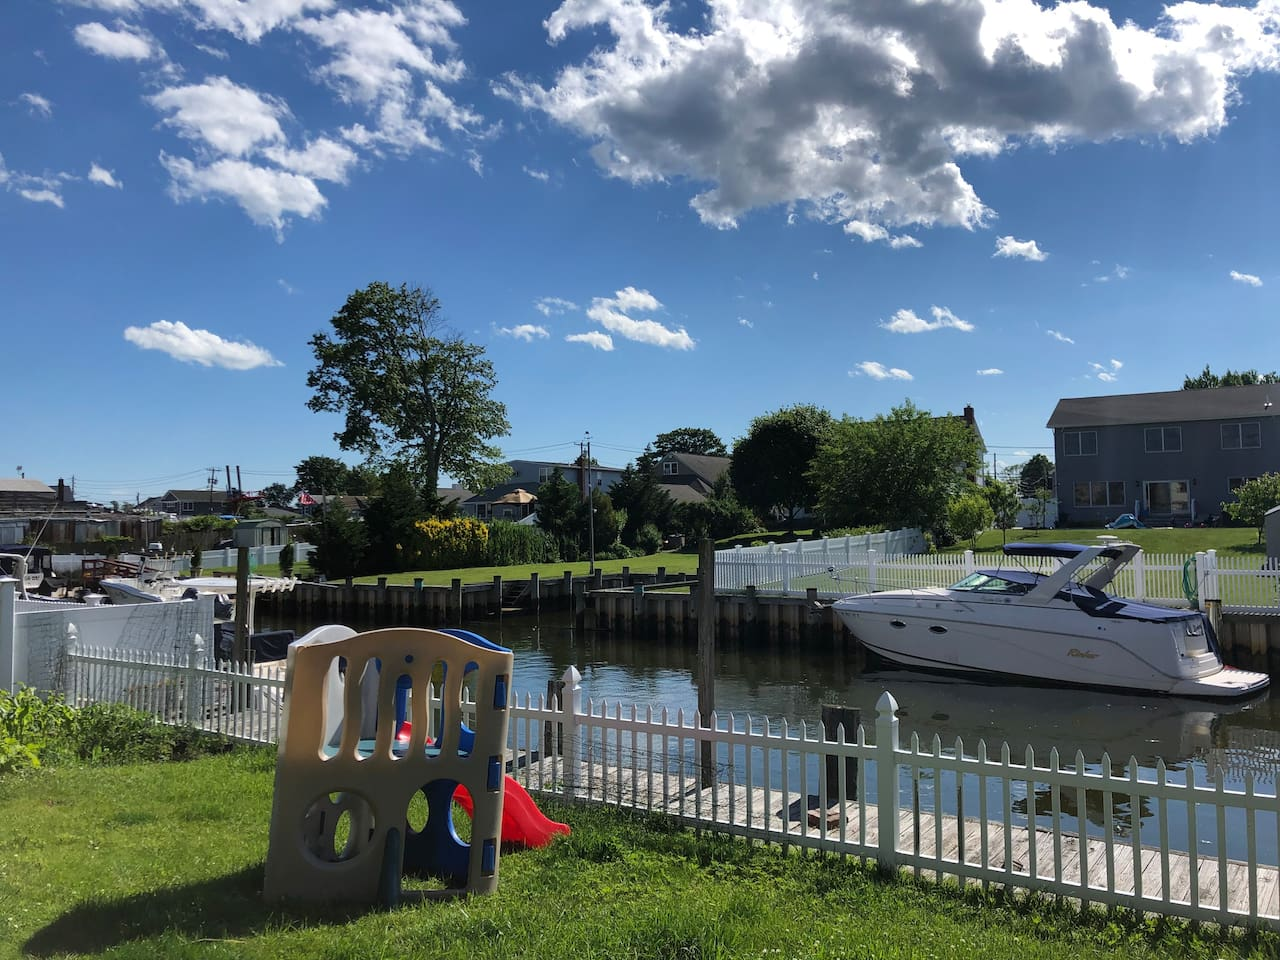 This is our waterfront, perfect to dock your boat while you stay with us or to partake in water activities! Kayaking anyone? We have a kayak for rent during your stay!